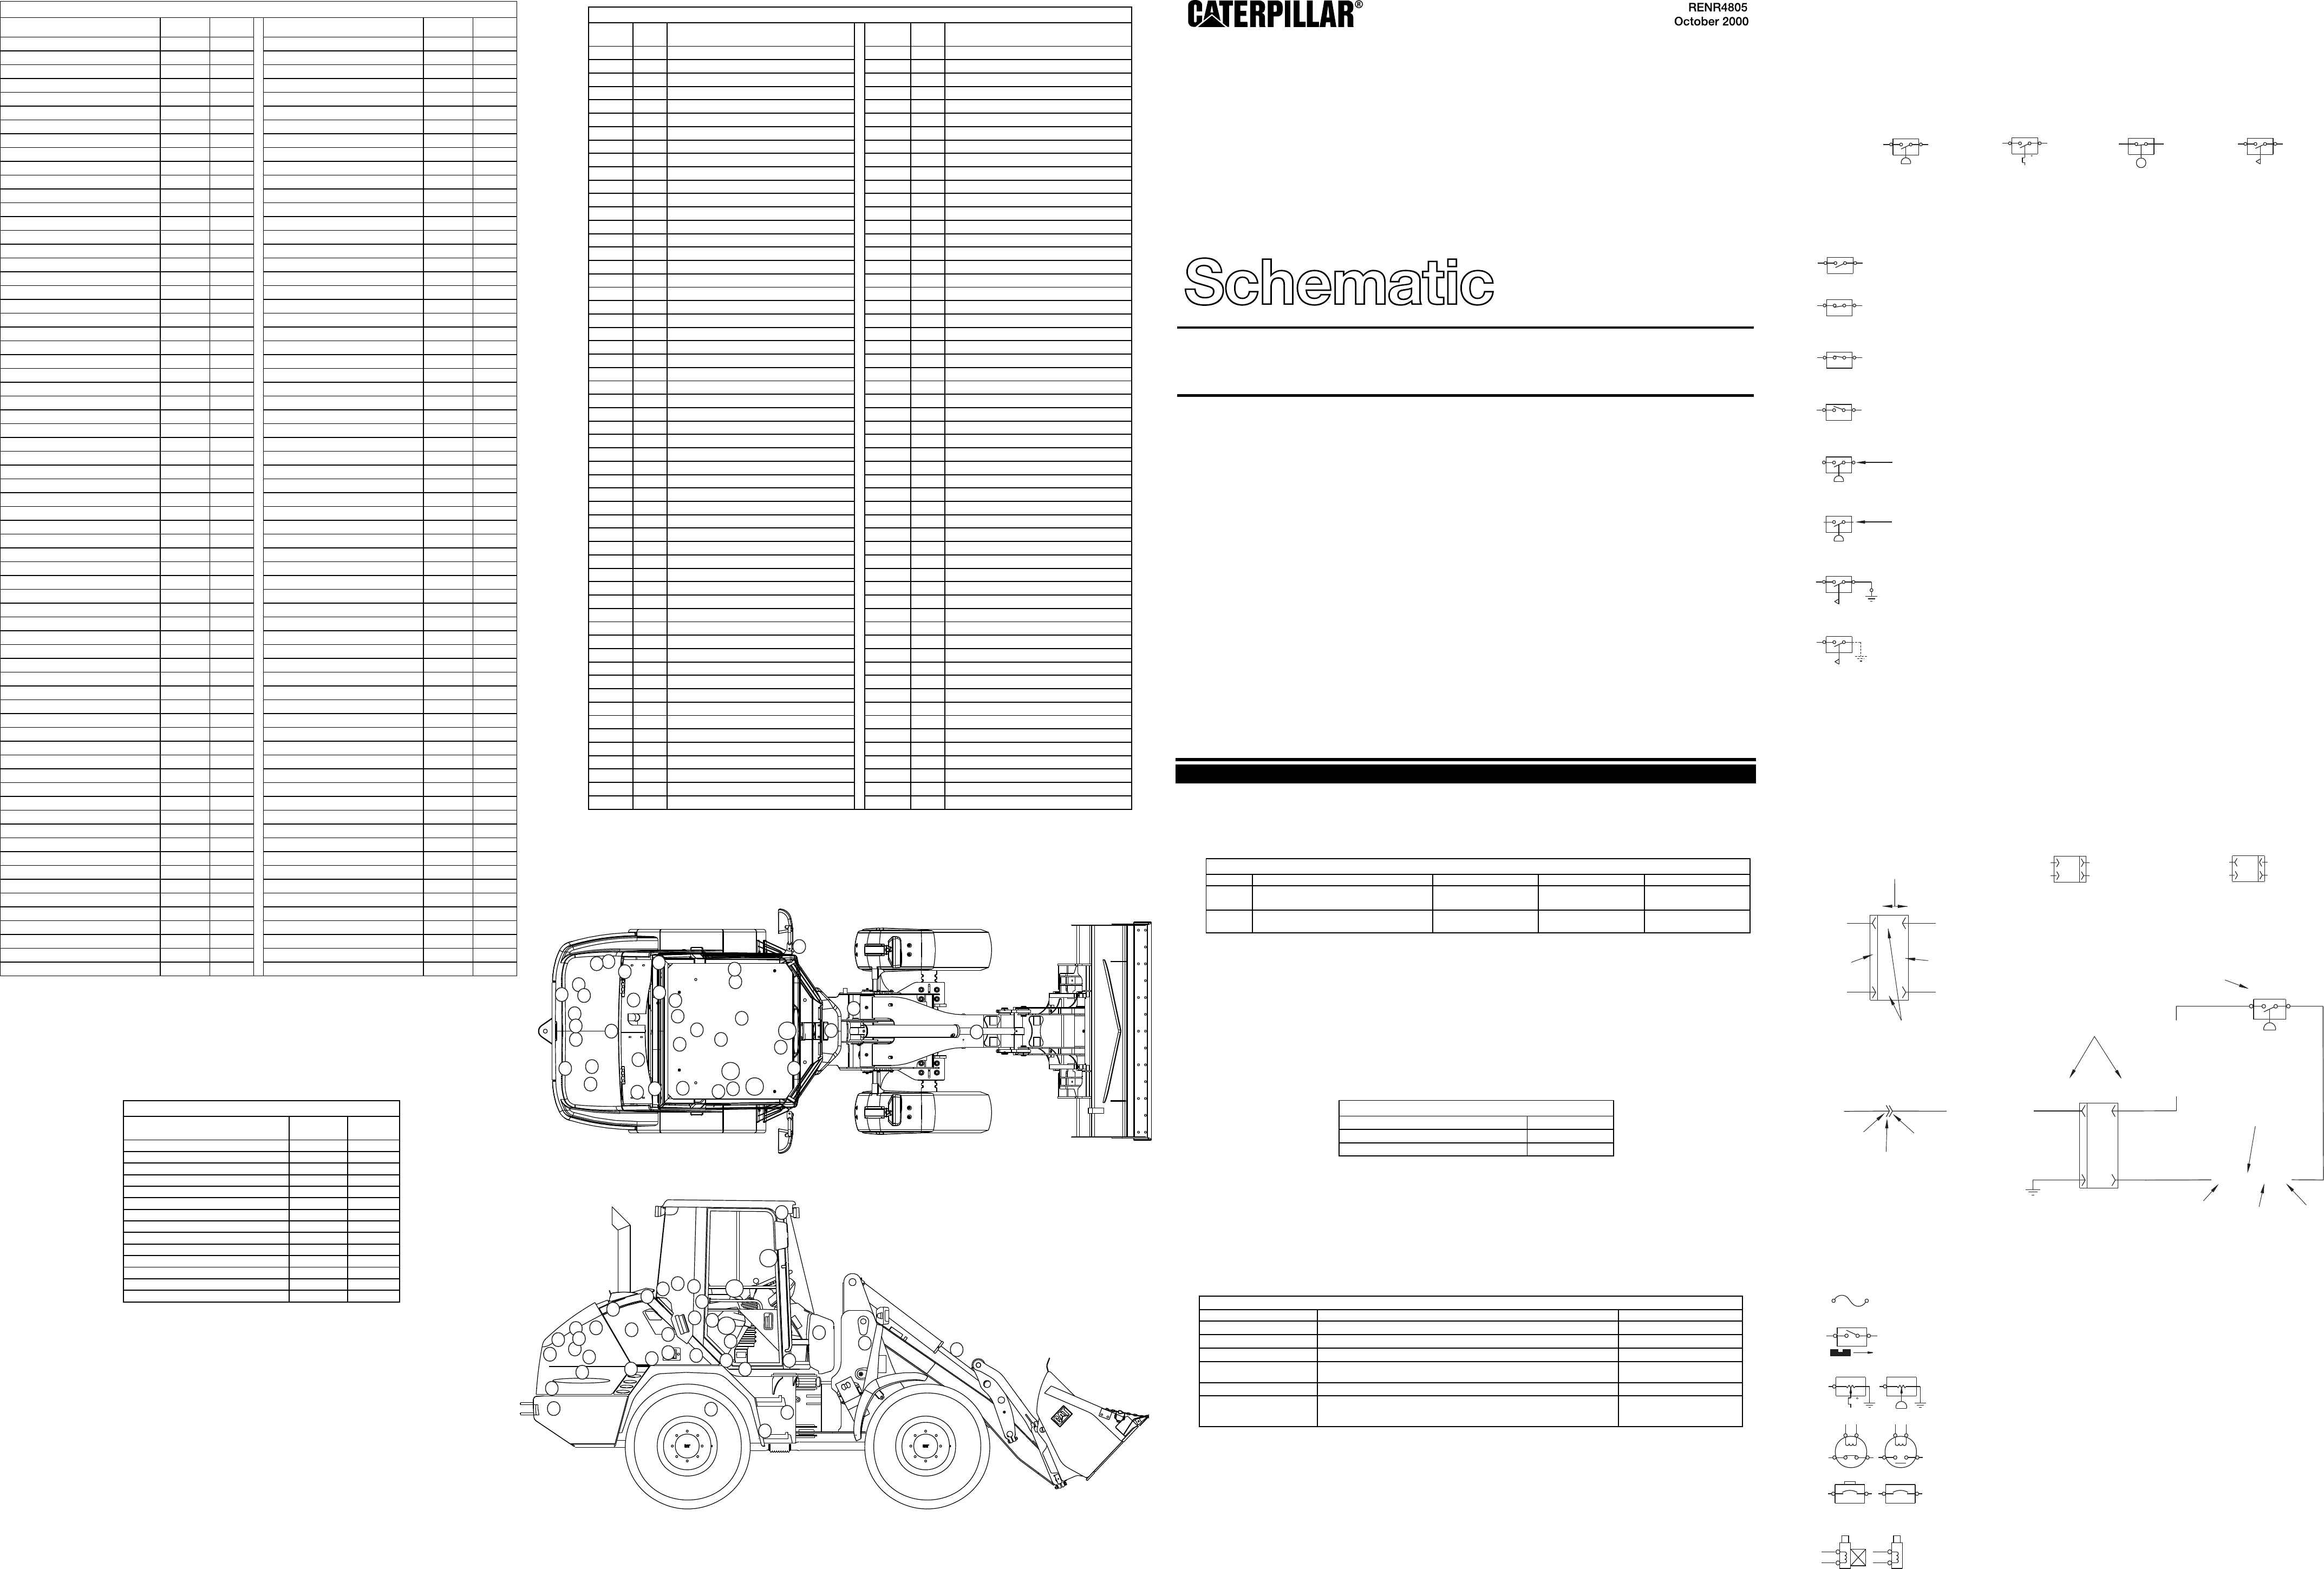 902  906  u0026 908 compact wheel loader electrical schematic